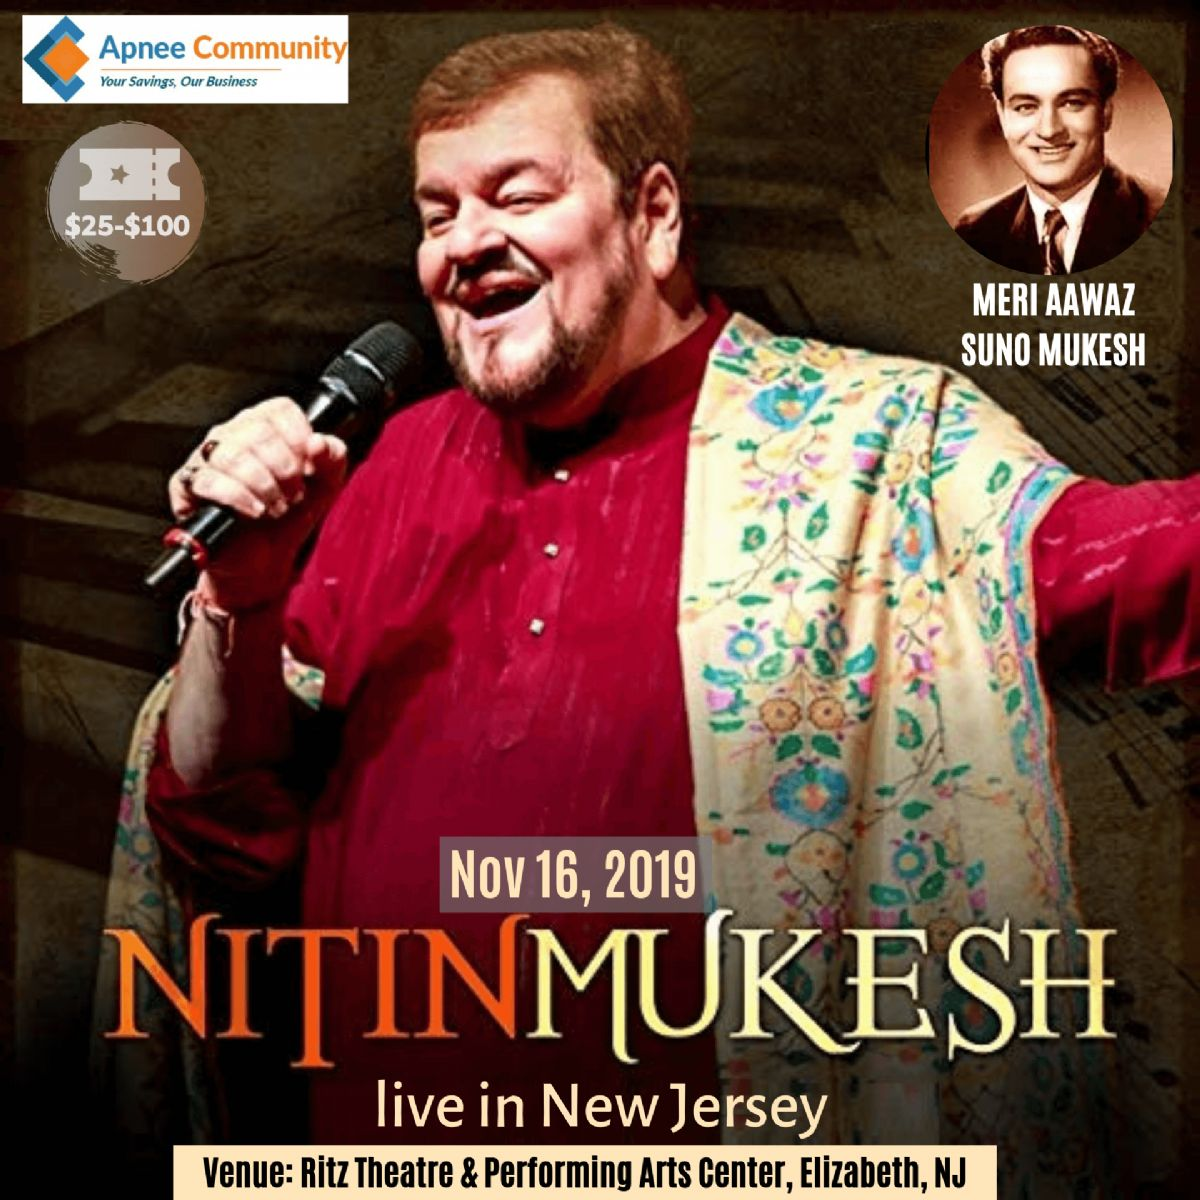 Nitin Mukesh live concert in New Jersey